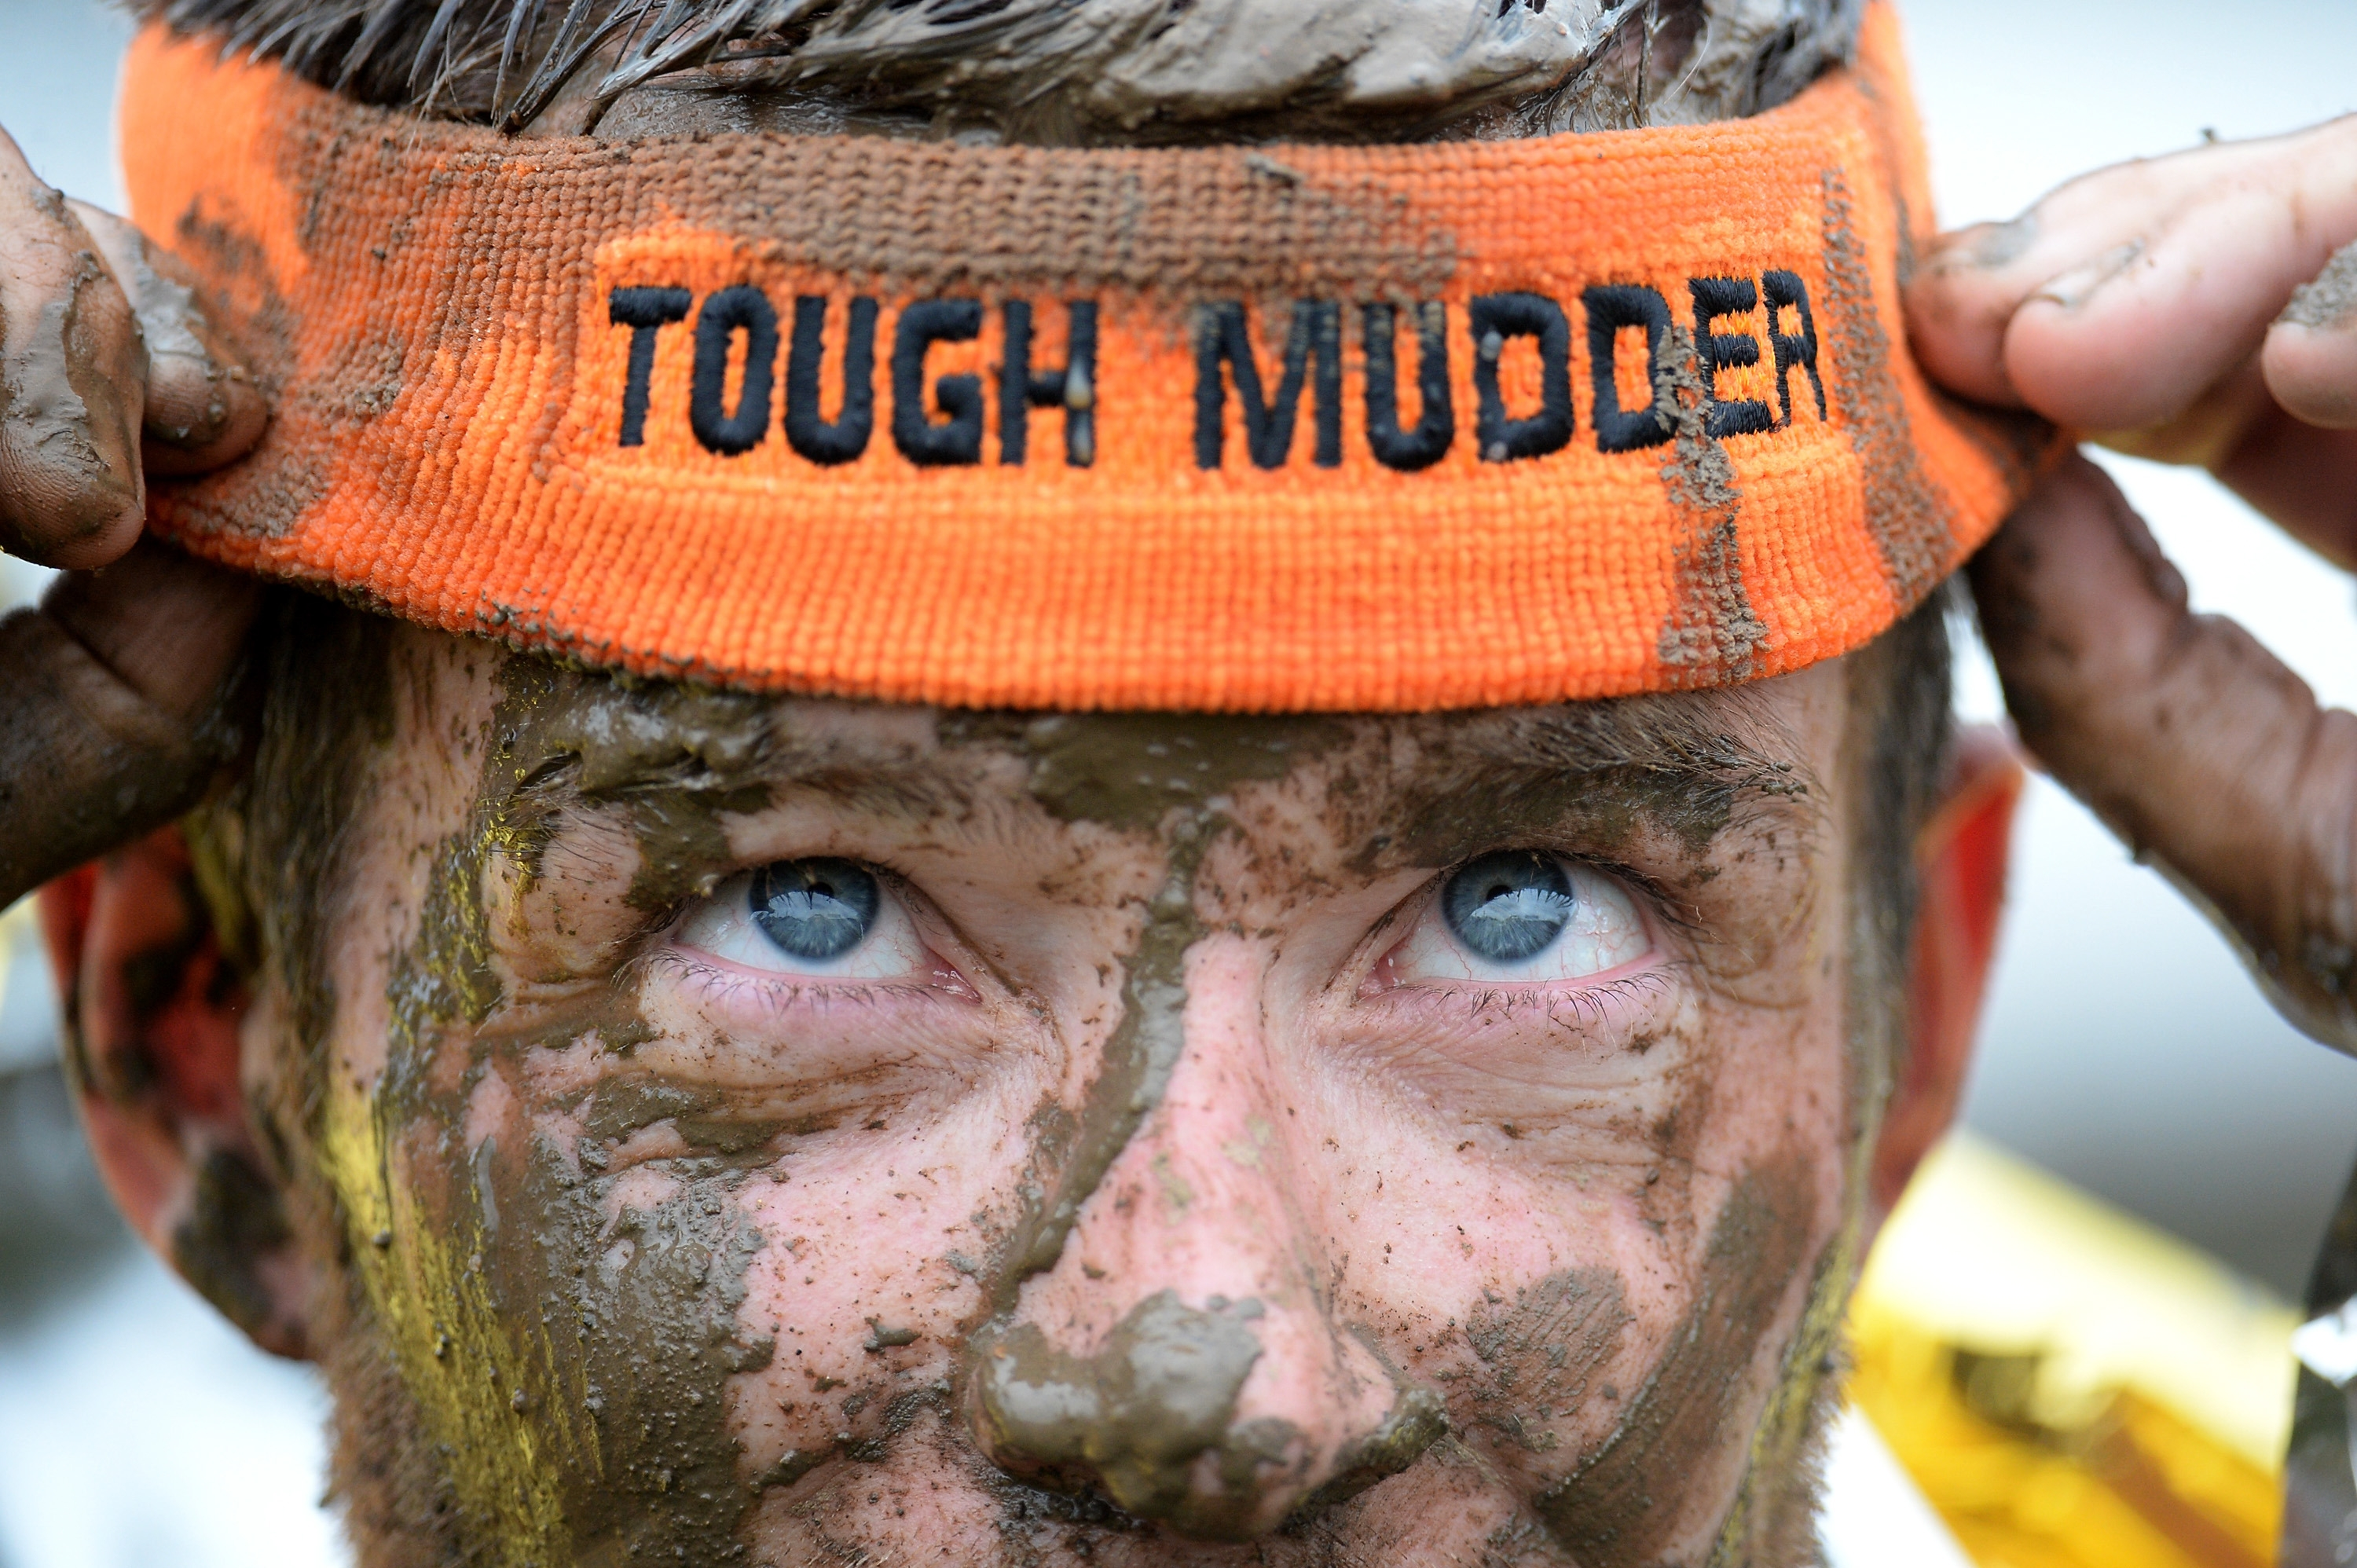 Tough Mudder competitions involve a 10- to 12-mile trail run over rugged terrain, featuring about 20 obstacles.ty Images